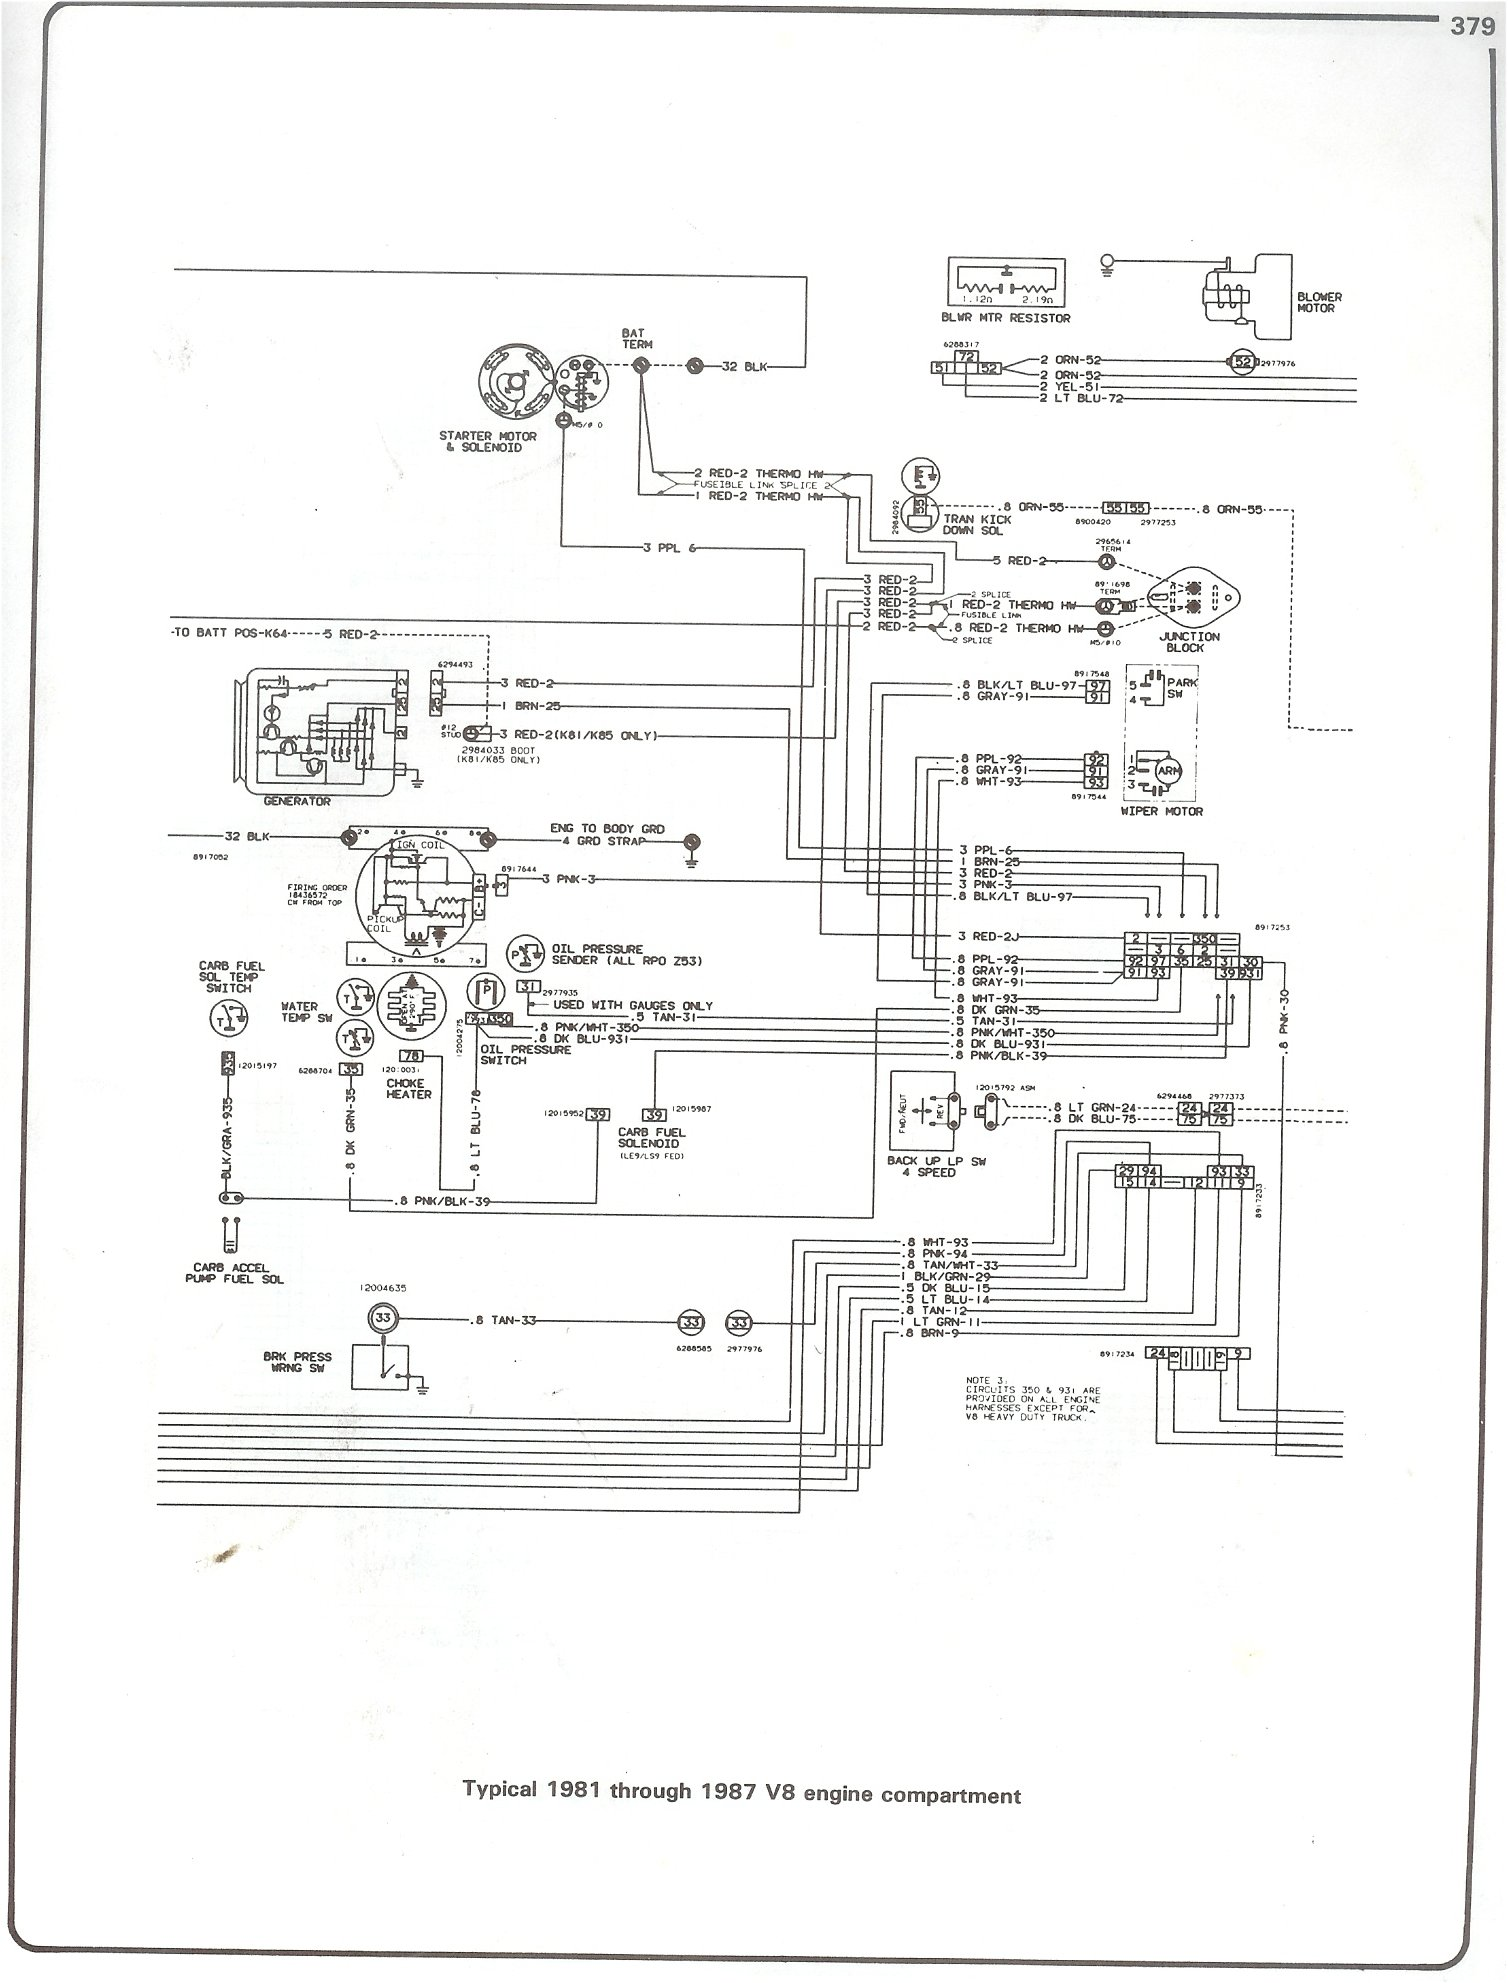 73 chevy c10 wire diagram schematics wiring diagrams u2022 rh seniorlivinguniversity co Wire Diagram 1997 7500 GMC Home AC Wiring Diagram